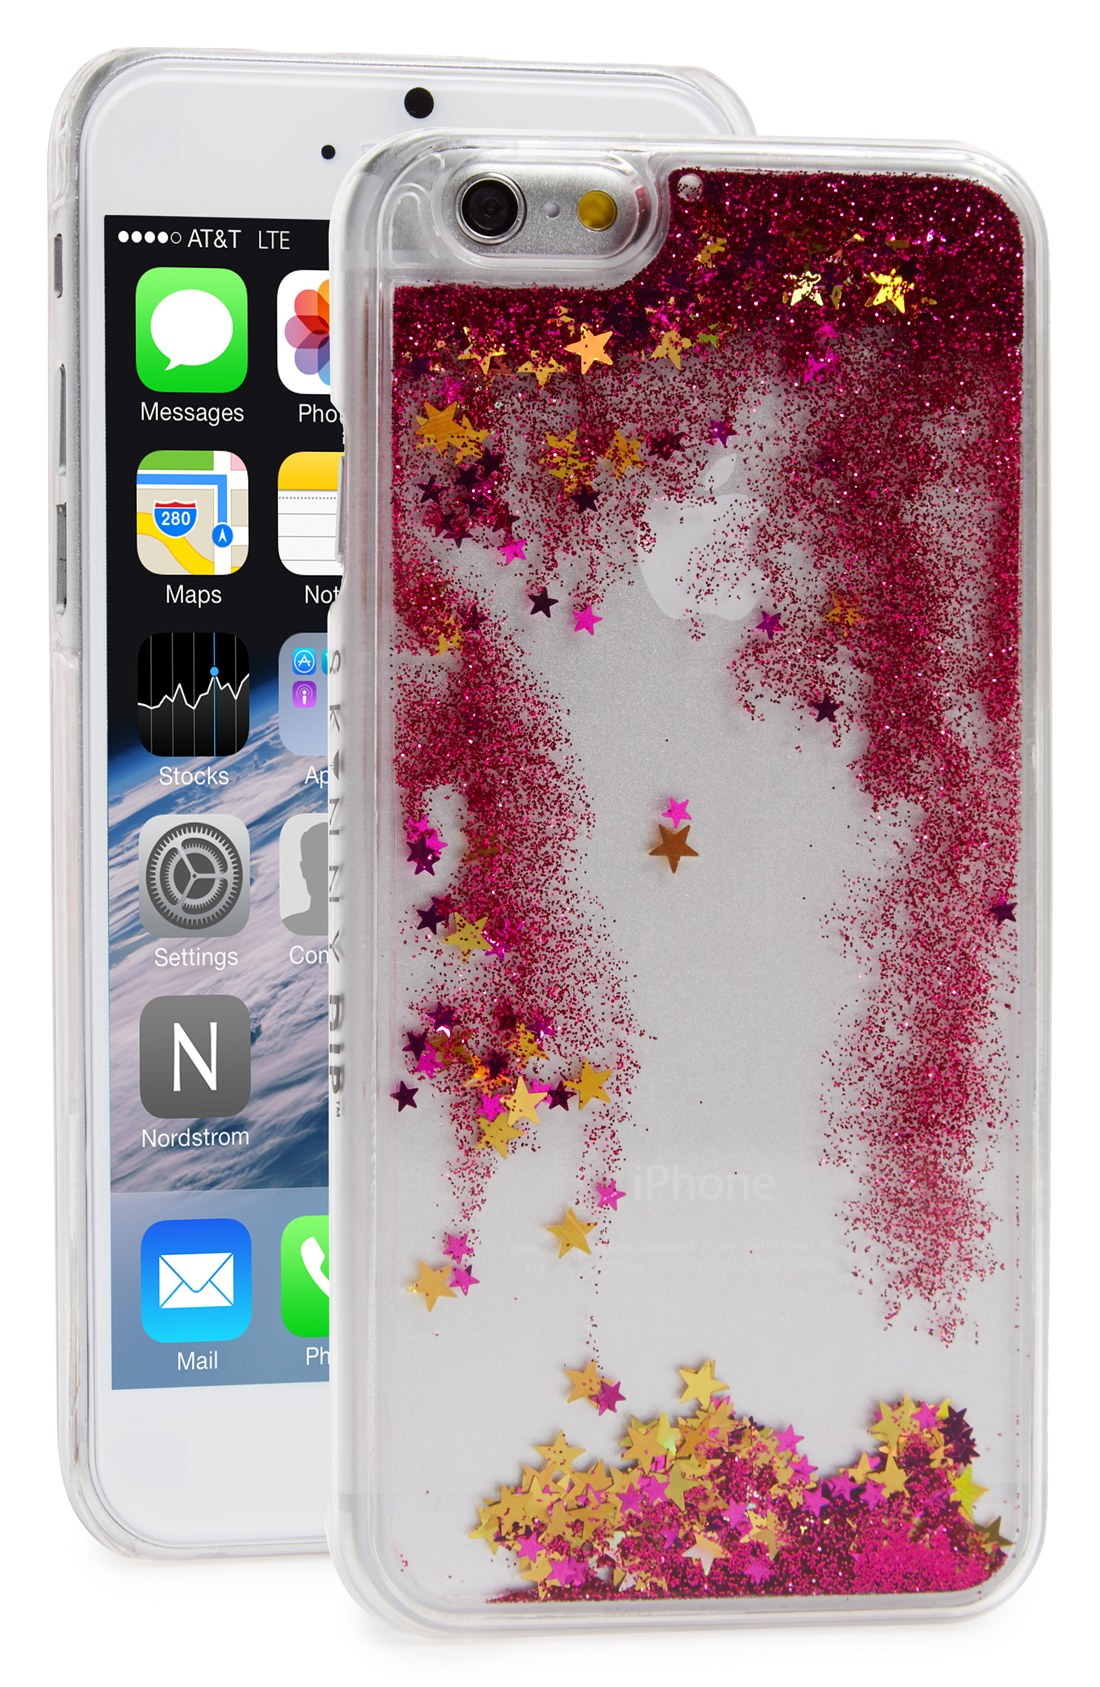 Liquid Glitter Quicksand Phone Cases for iPhone 5/5S ... | 1100 x 1687 jpeg 441kB